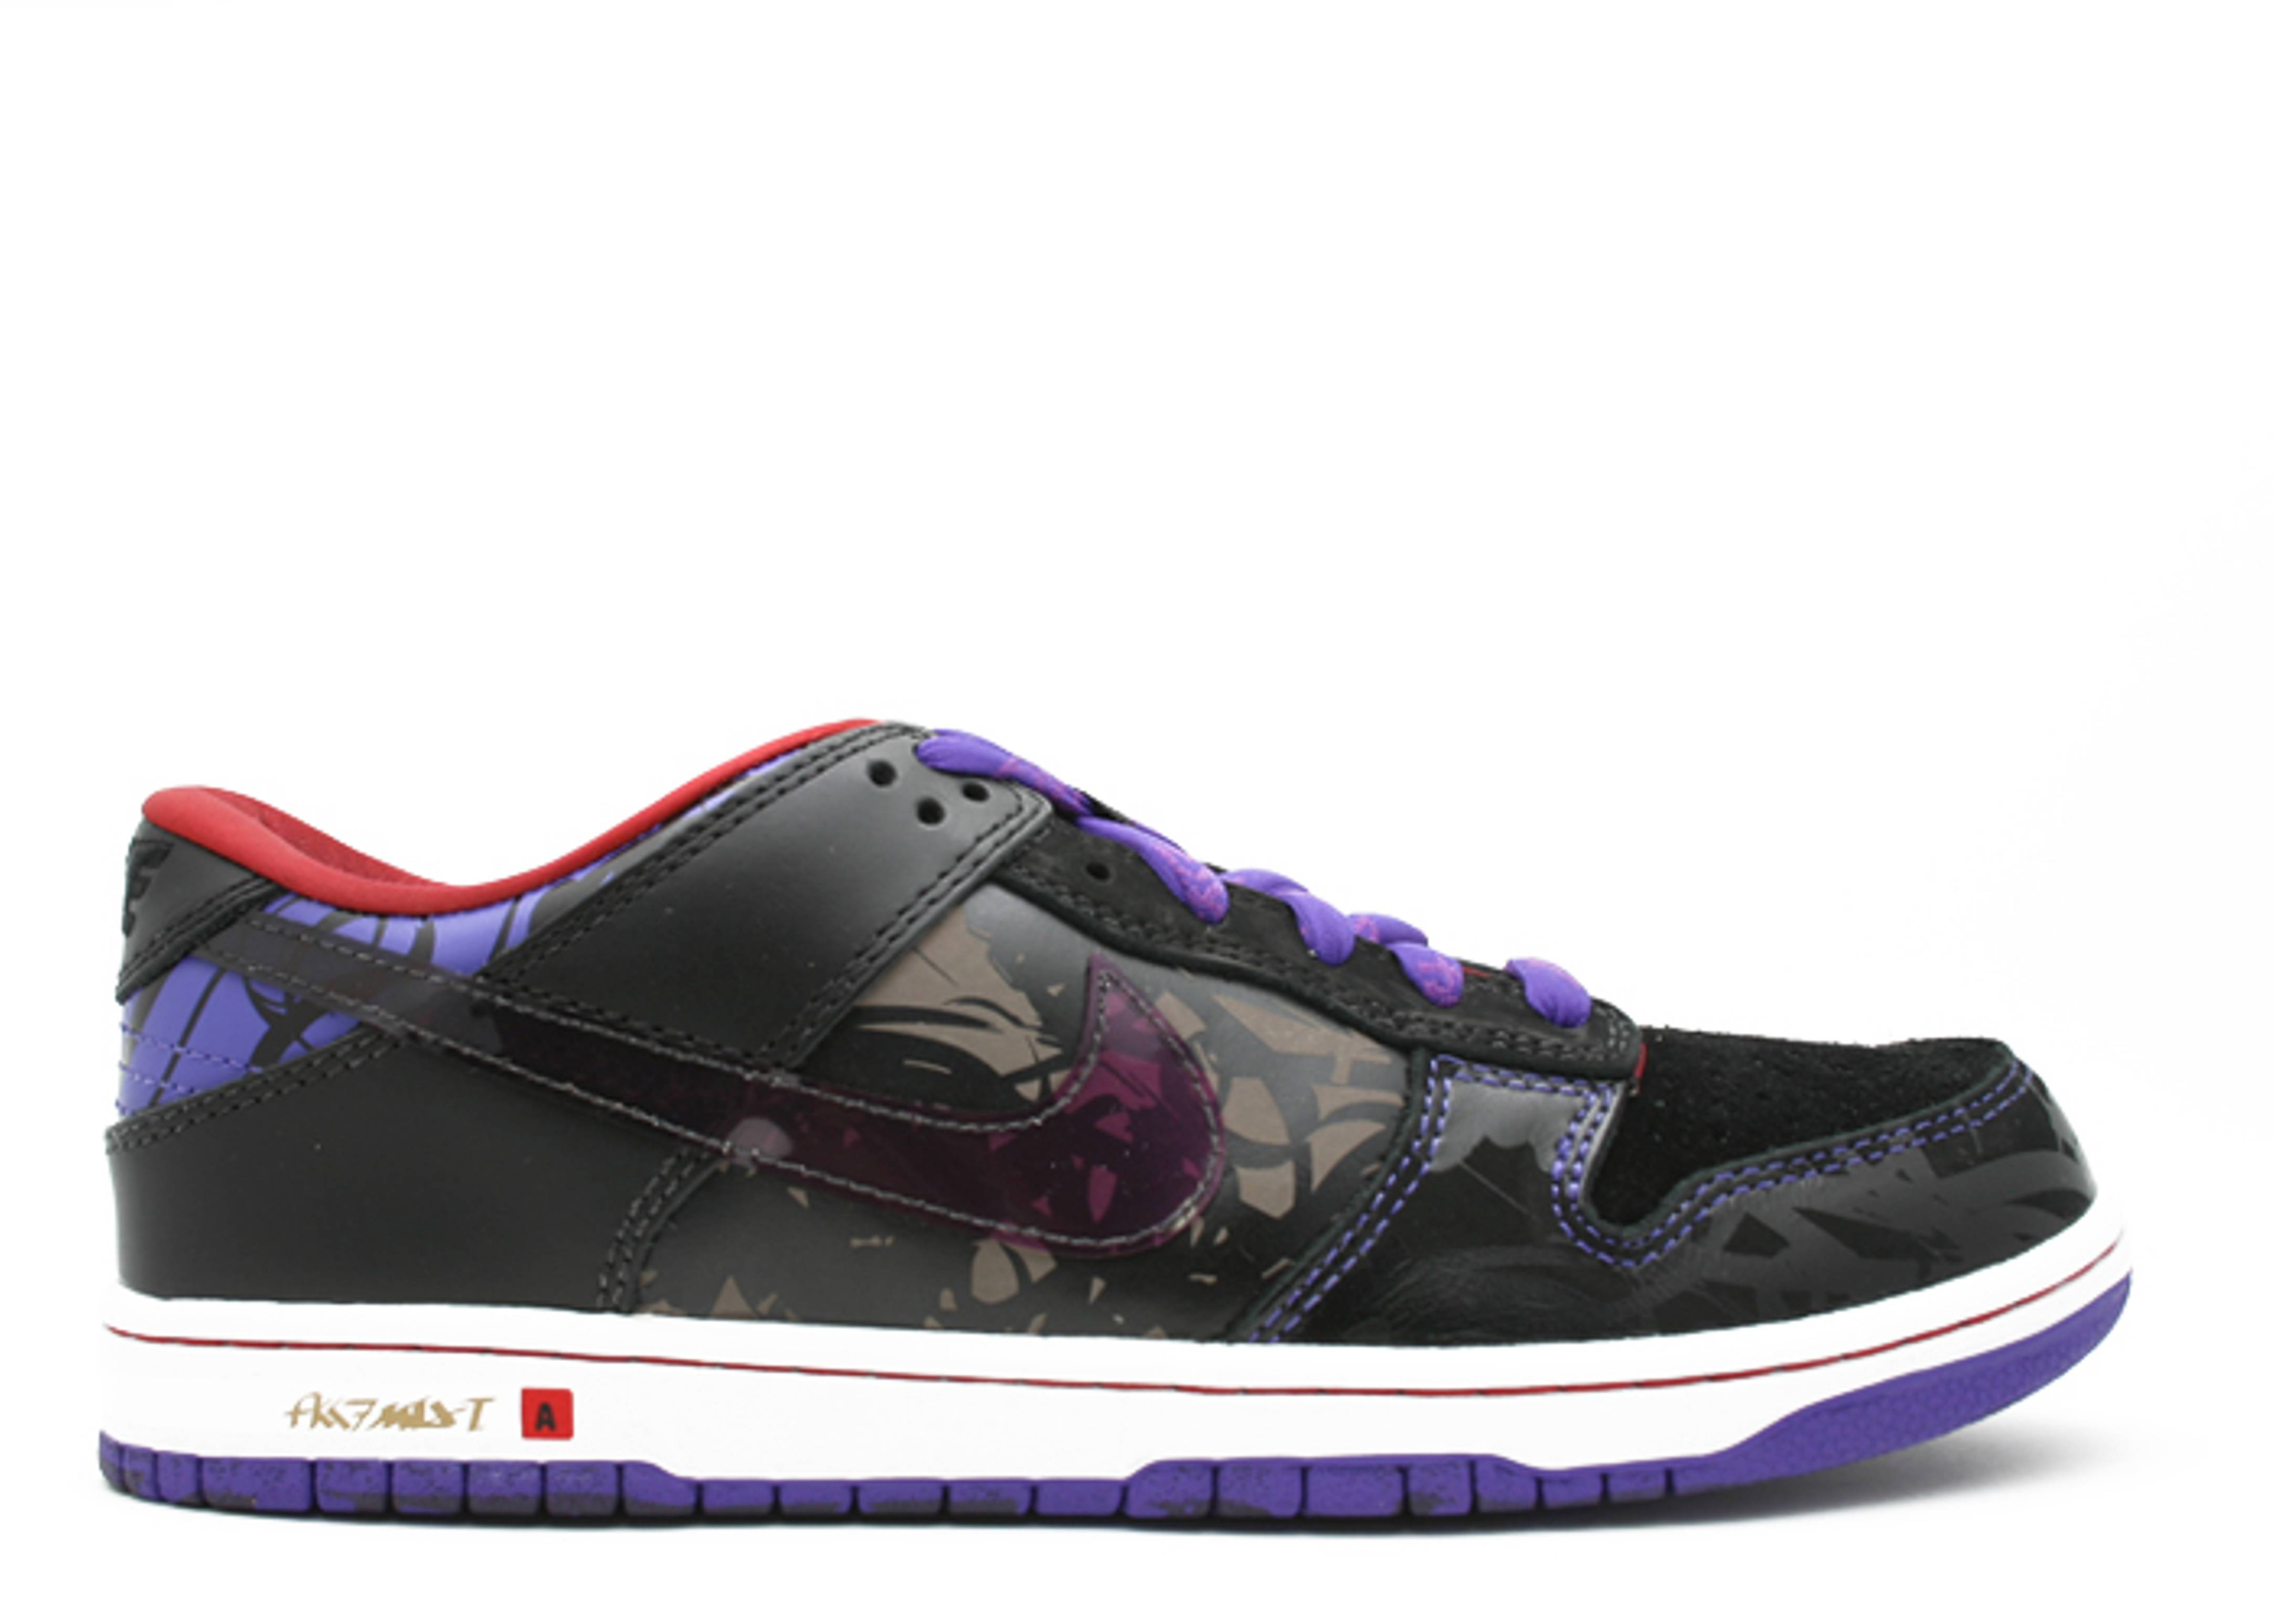 nike dunk low premium black purple shoes Nike Air Max 1. 61f9a101ee